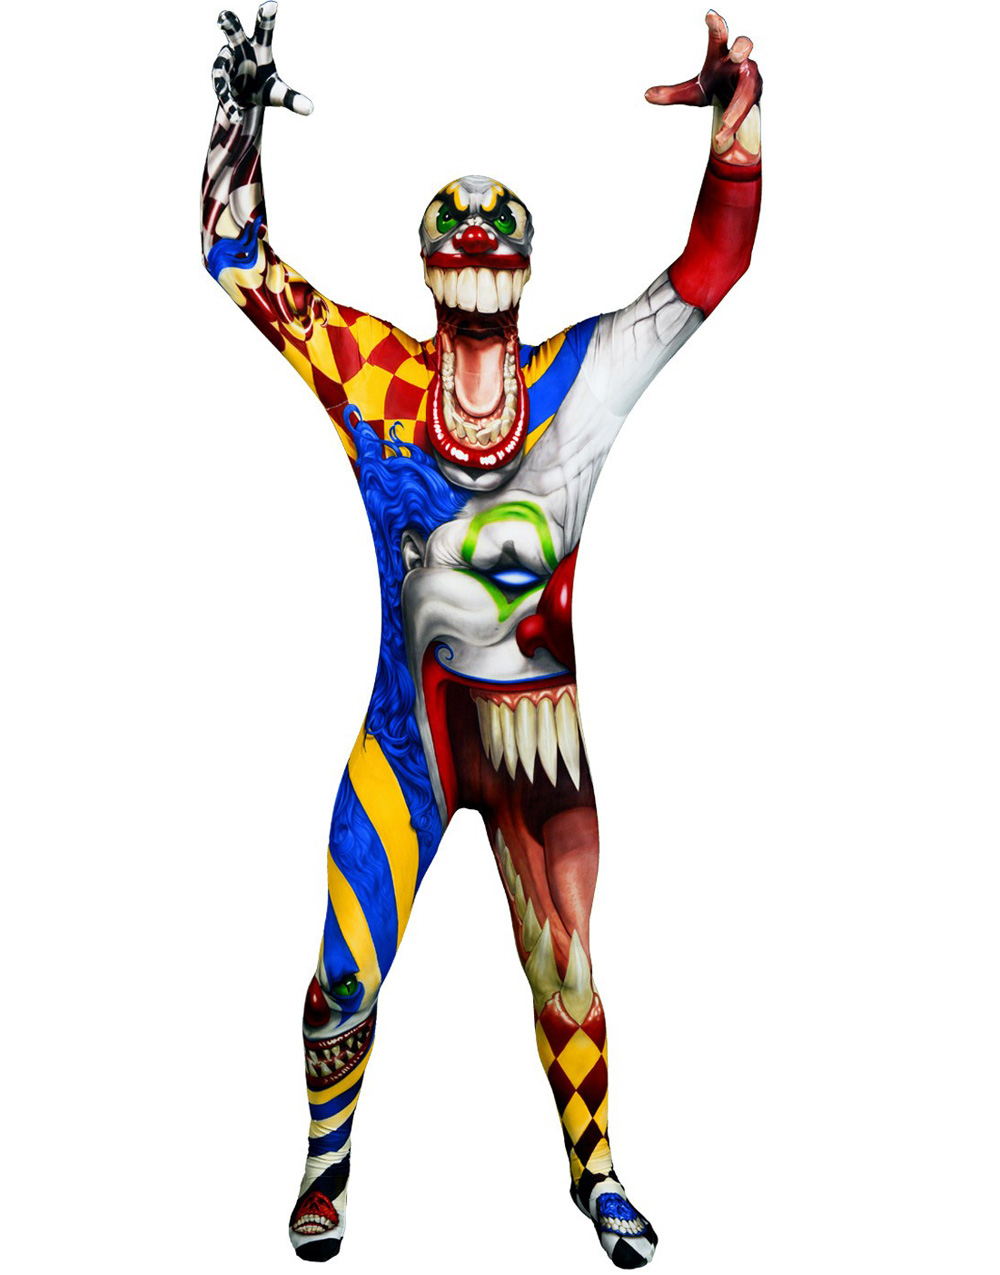 bdd3cb7e 622204-limited-edition-the-morph-monster-collection-the -scary-clown-original-morphsuit-halloween-kostyme.jpg